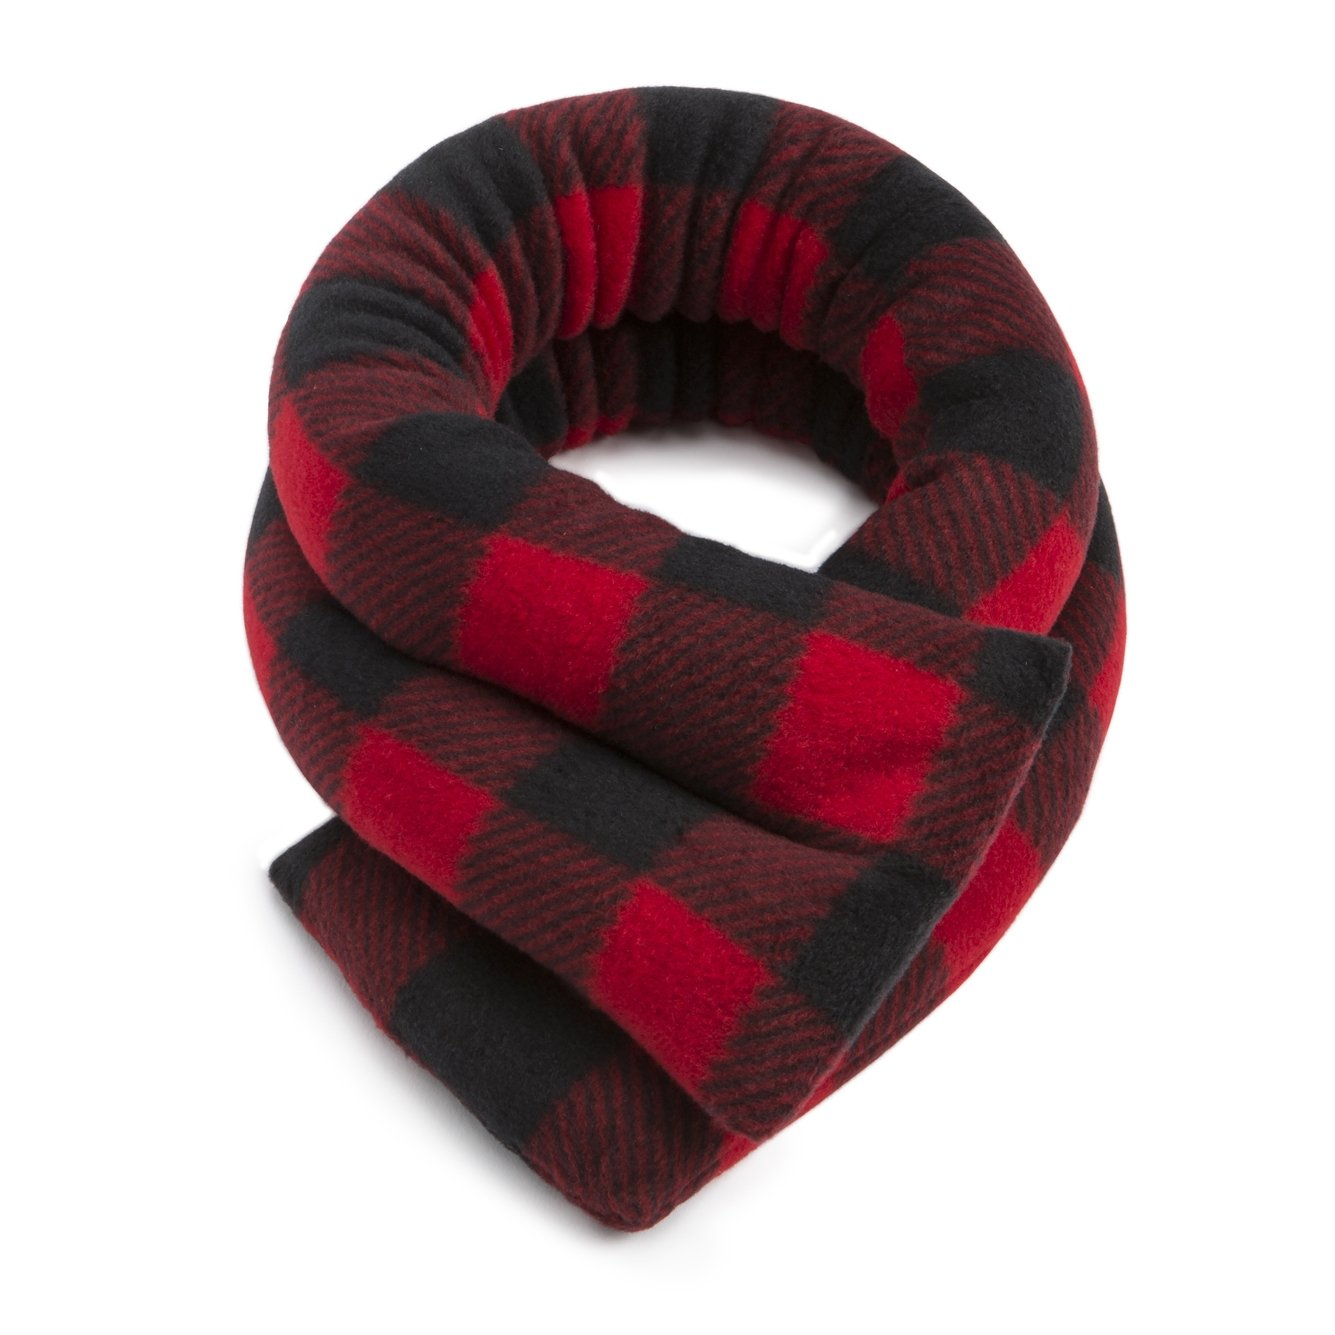 Microwavable Neck Heating Wrap by Sunny Bay - Bean Bag Heat Pad for Neck Pain Relief, Microwave, Hot & Cold Therapy, Extra Long Shoulder Heat Pack, Back Pain Relief (Buffalo Plaid red)